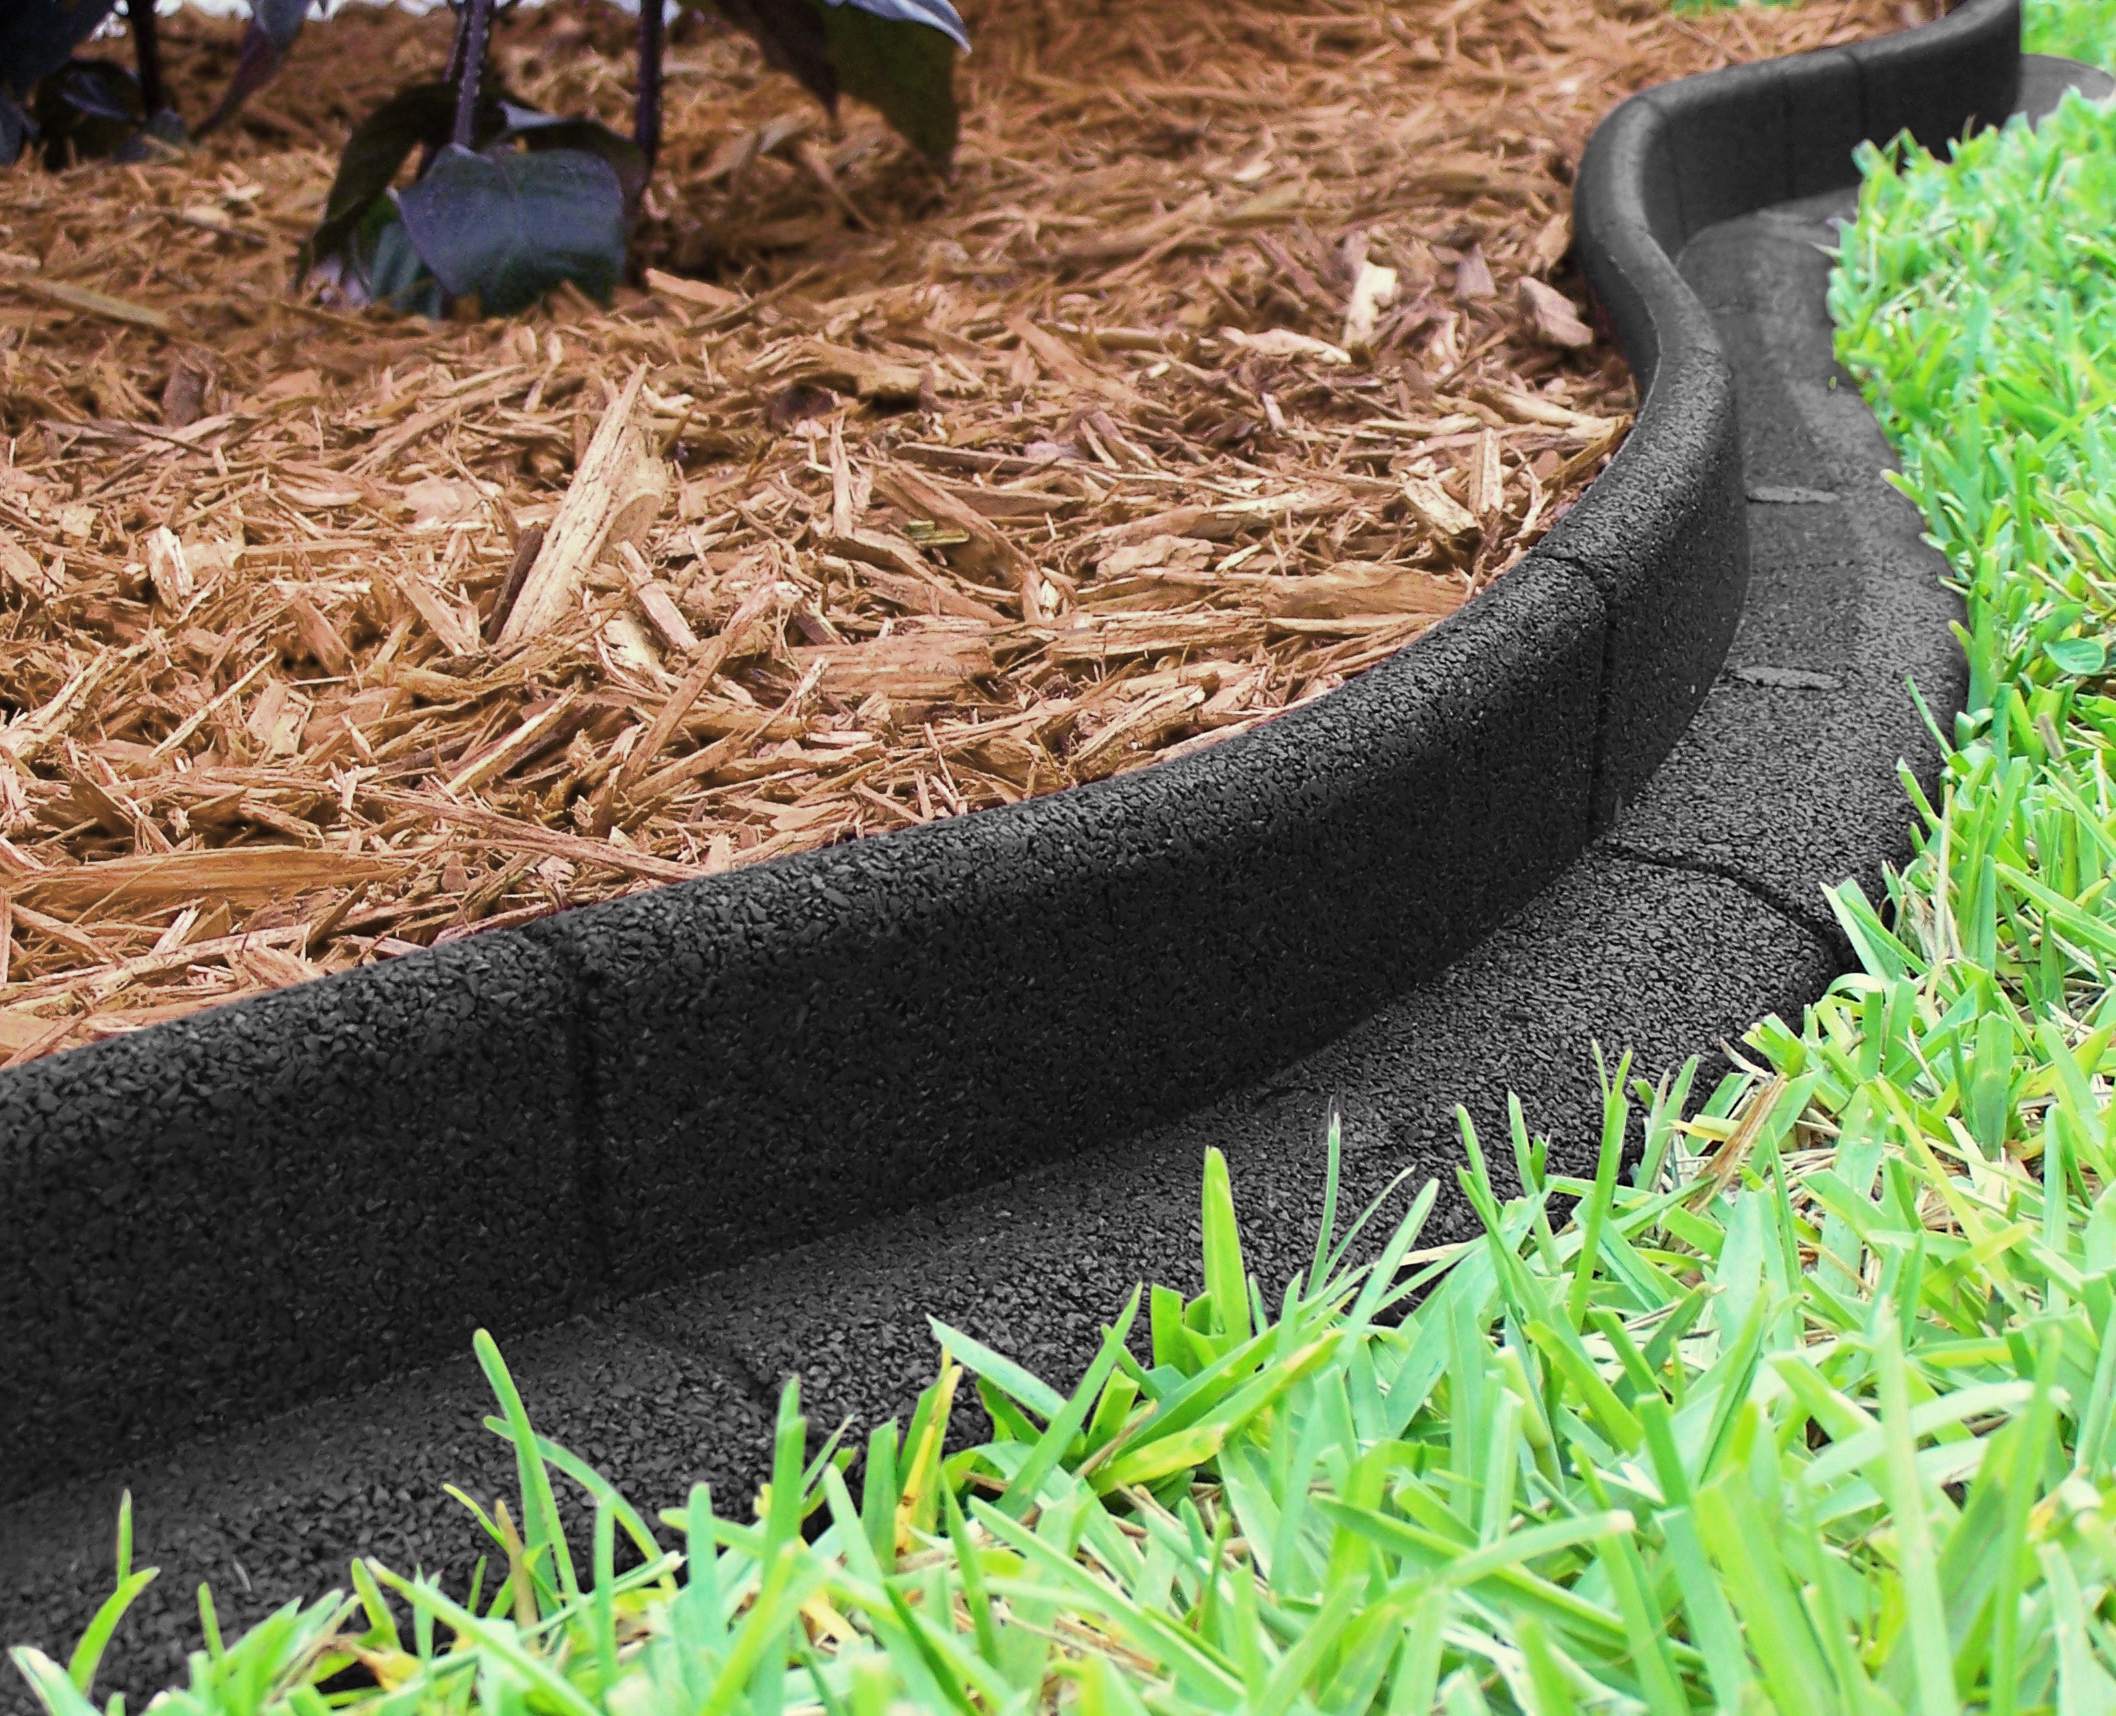 4 Pc Outdoor Flexible Lattice Weatherproof Plastic Garden Edging Border,  Fence Can Be Curved To Fit The Contour Of Any Path By LATTICE FENCE    Walmart.com